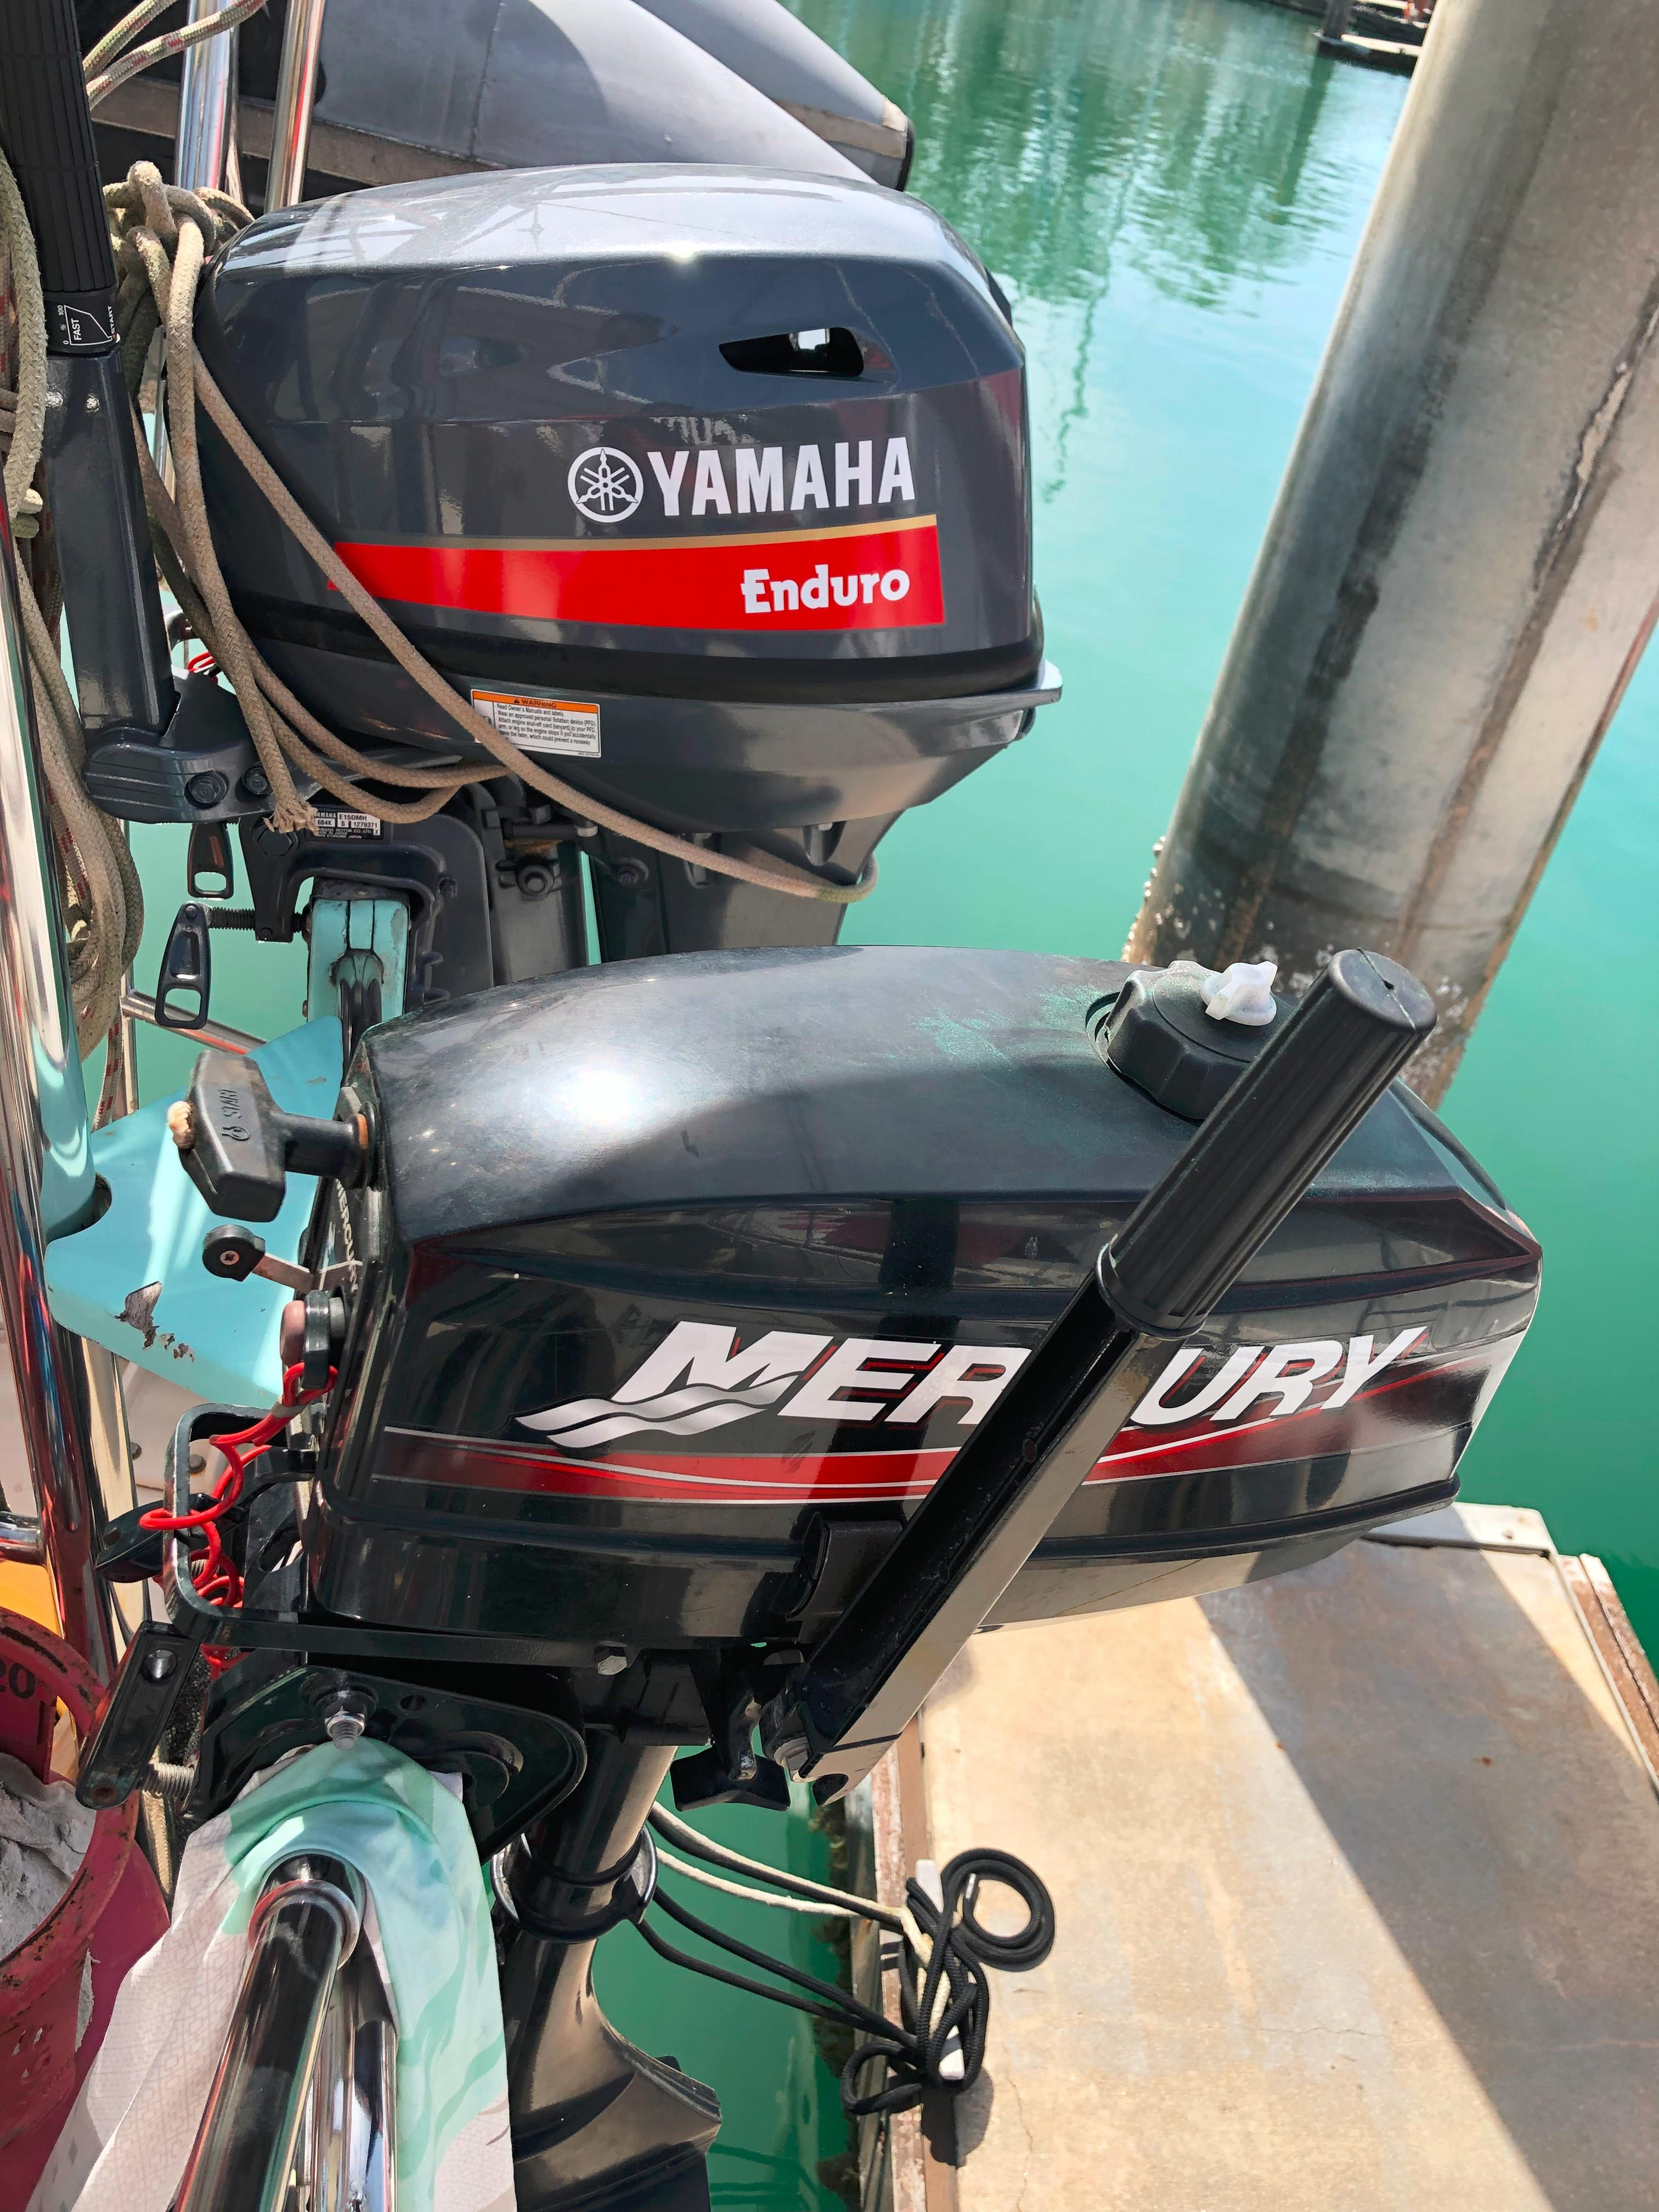 Outboard engines 15hp and 3.3hp